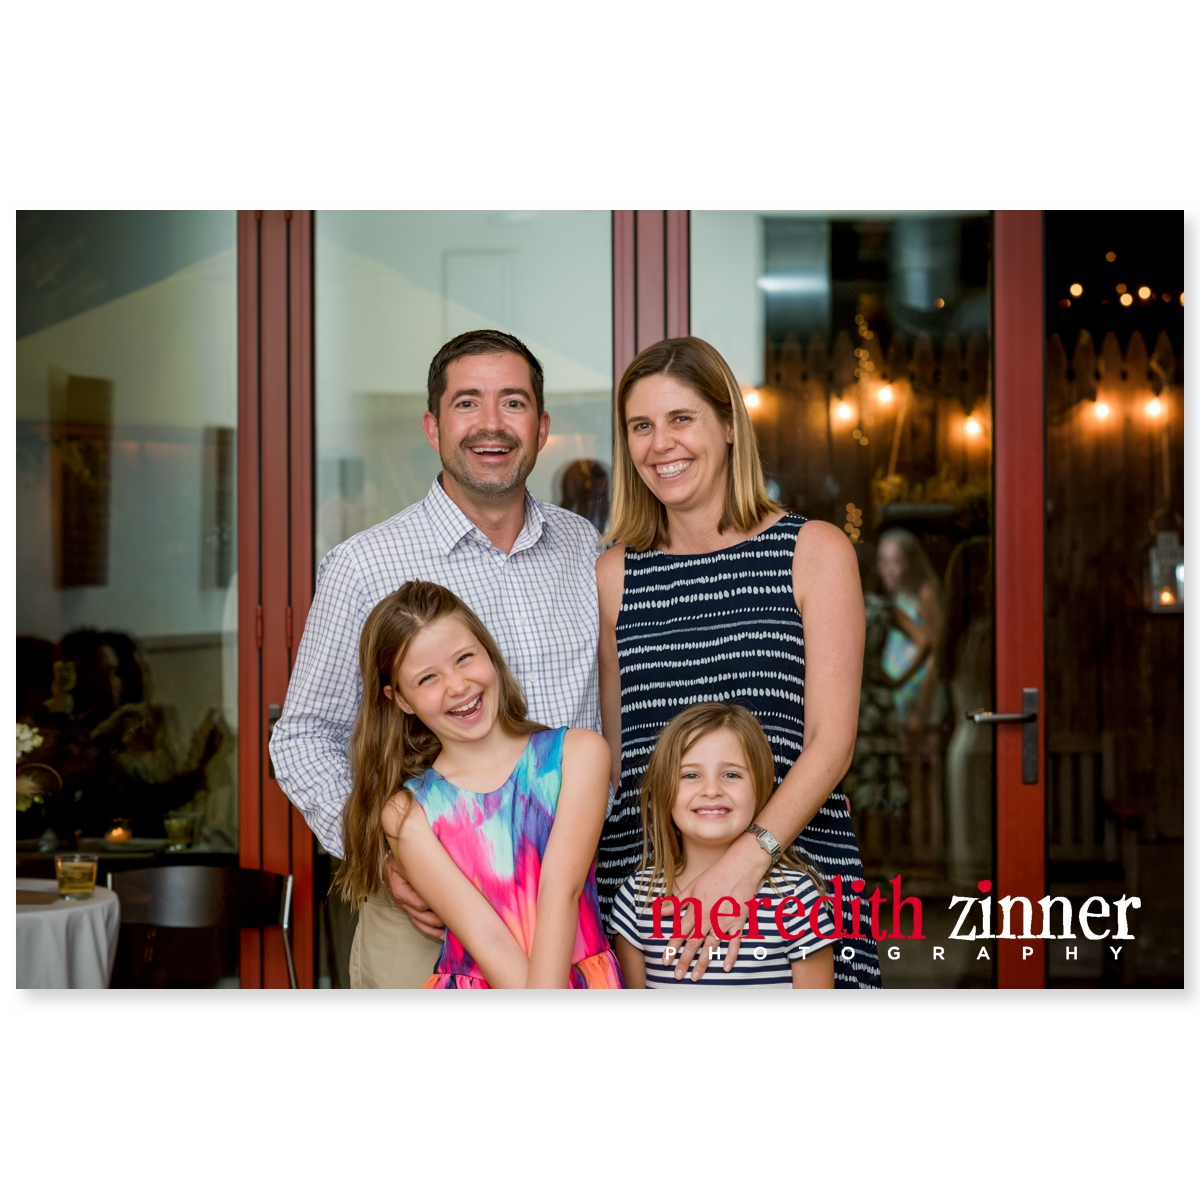 Meredith_Zinner_Photography_StilesCelebration_0442